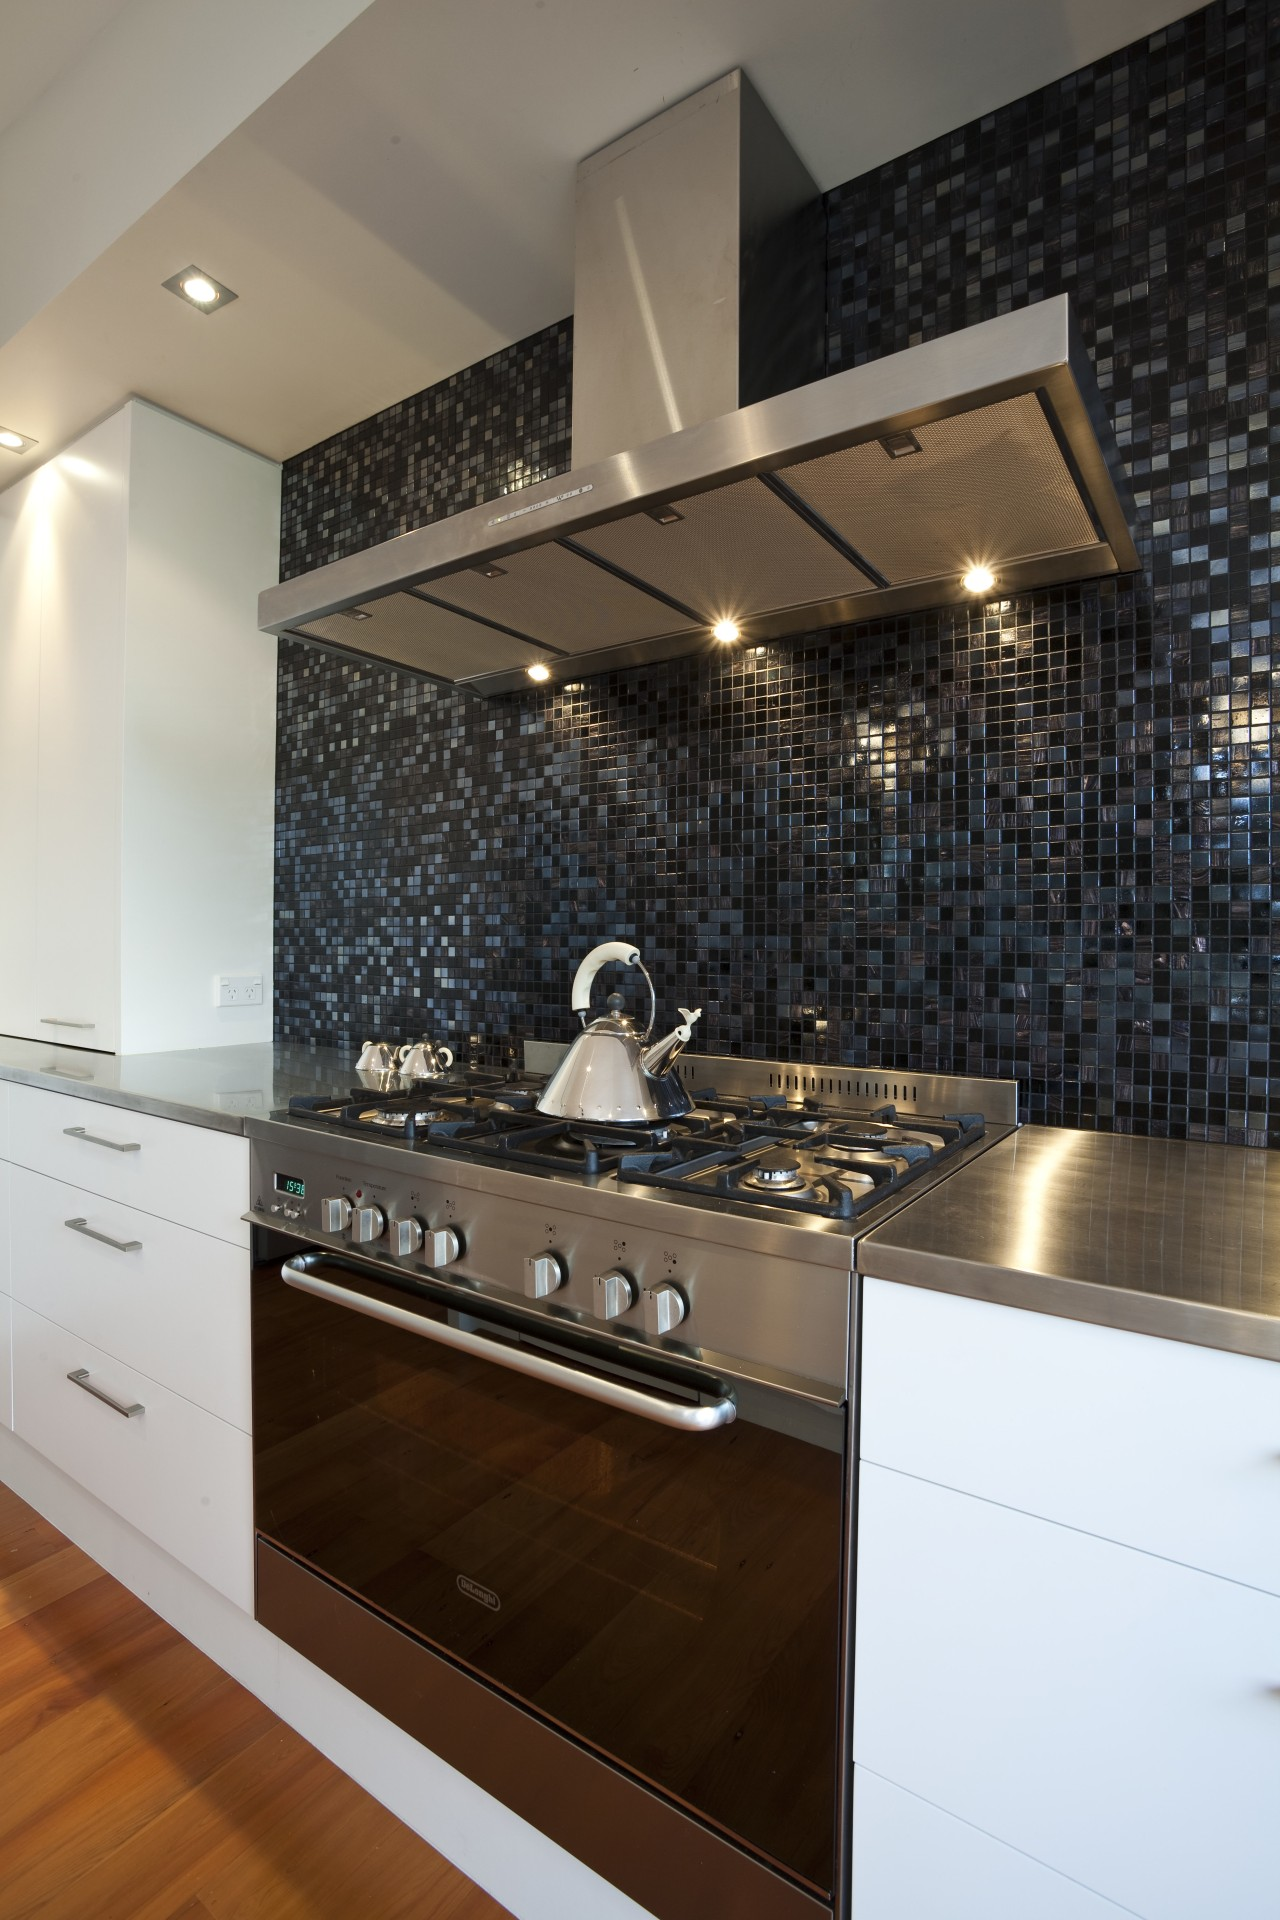 Kitchen designed by Yellow Fox, manufactured by Quality ceiling, countertop, flooring, interior design, kitchen, room, under cabinet lighting, black, brown